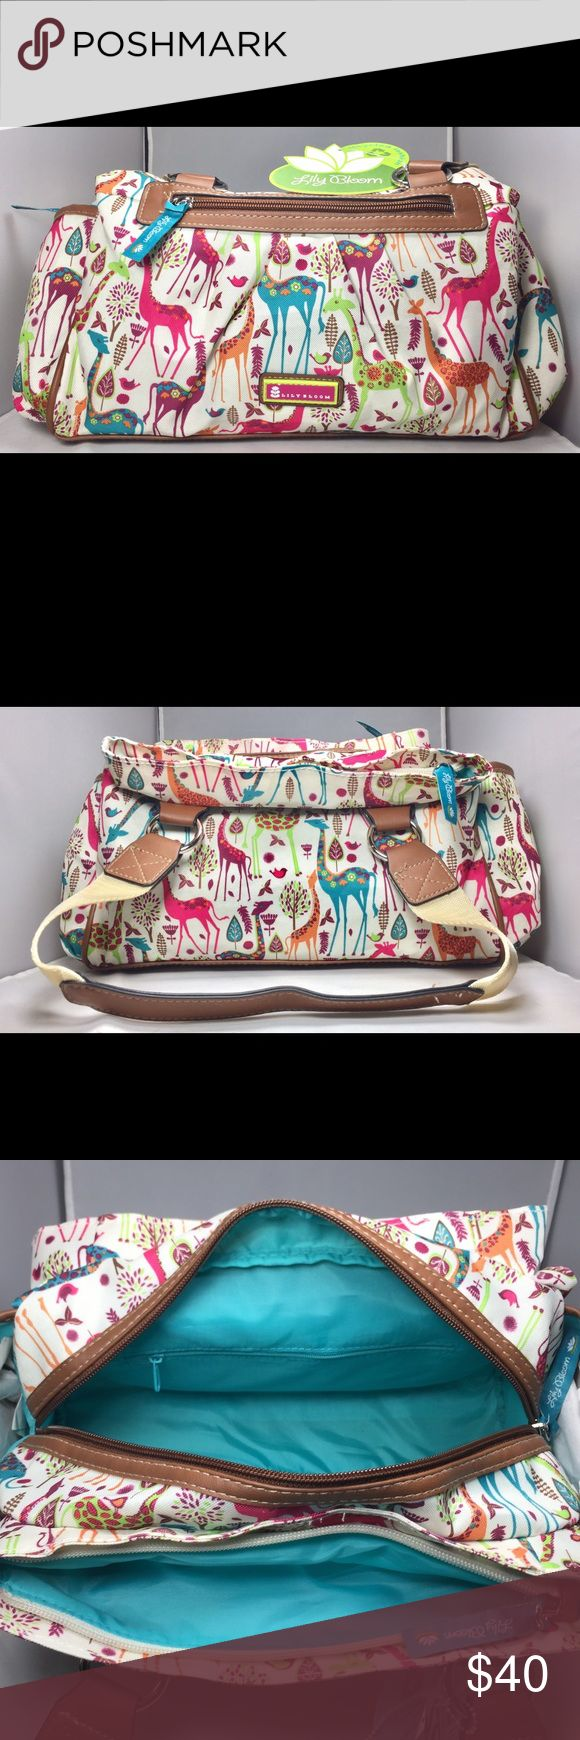 BNWT Lily Bloom Handbag Colorful Giraffe-ic Park purse has many zippered pocket sections. Very spacious and goes great with any outfit. lily bloom Bags Shoulder Bags